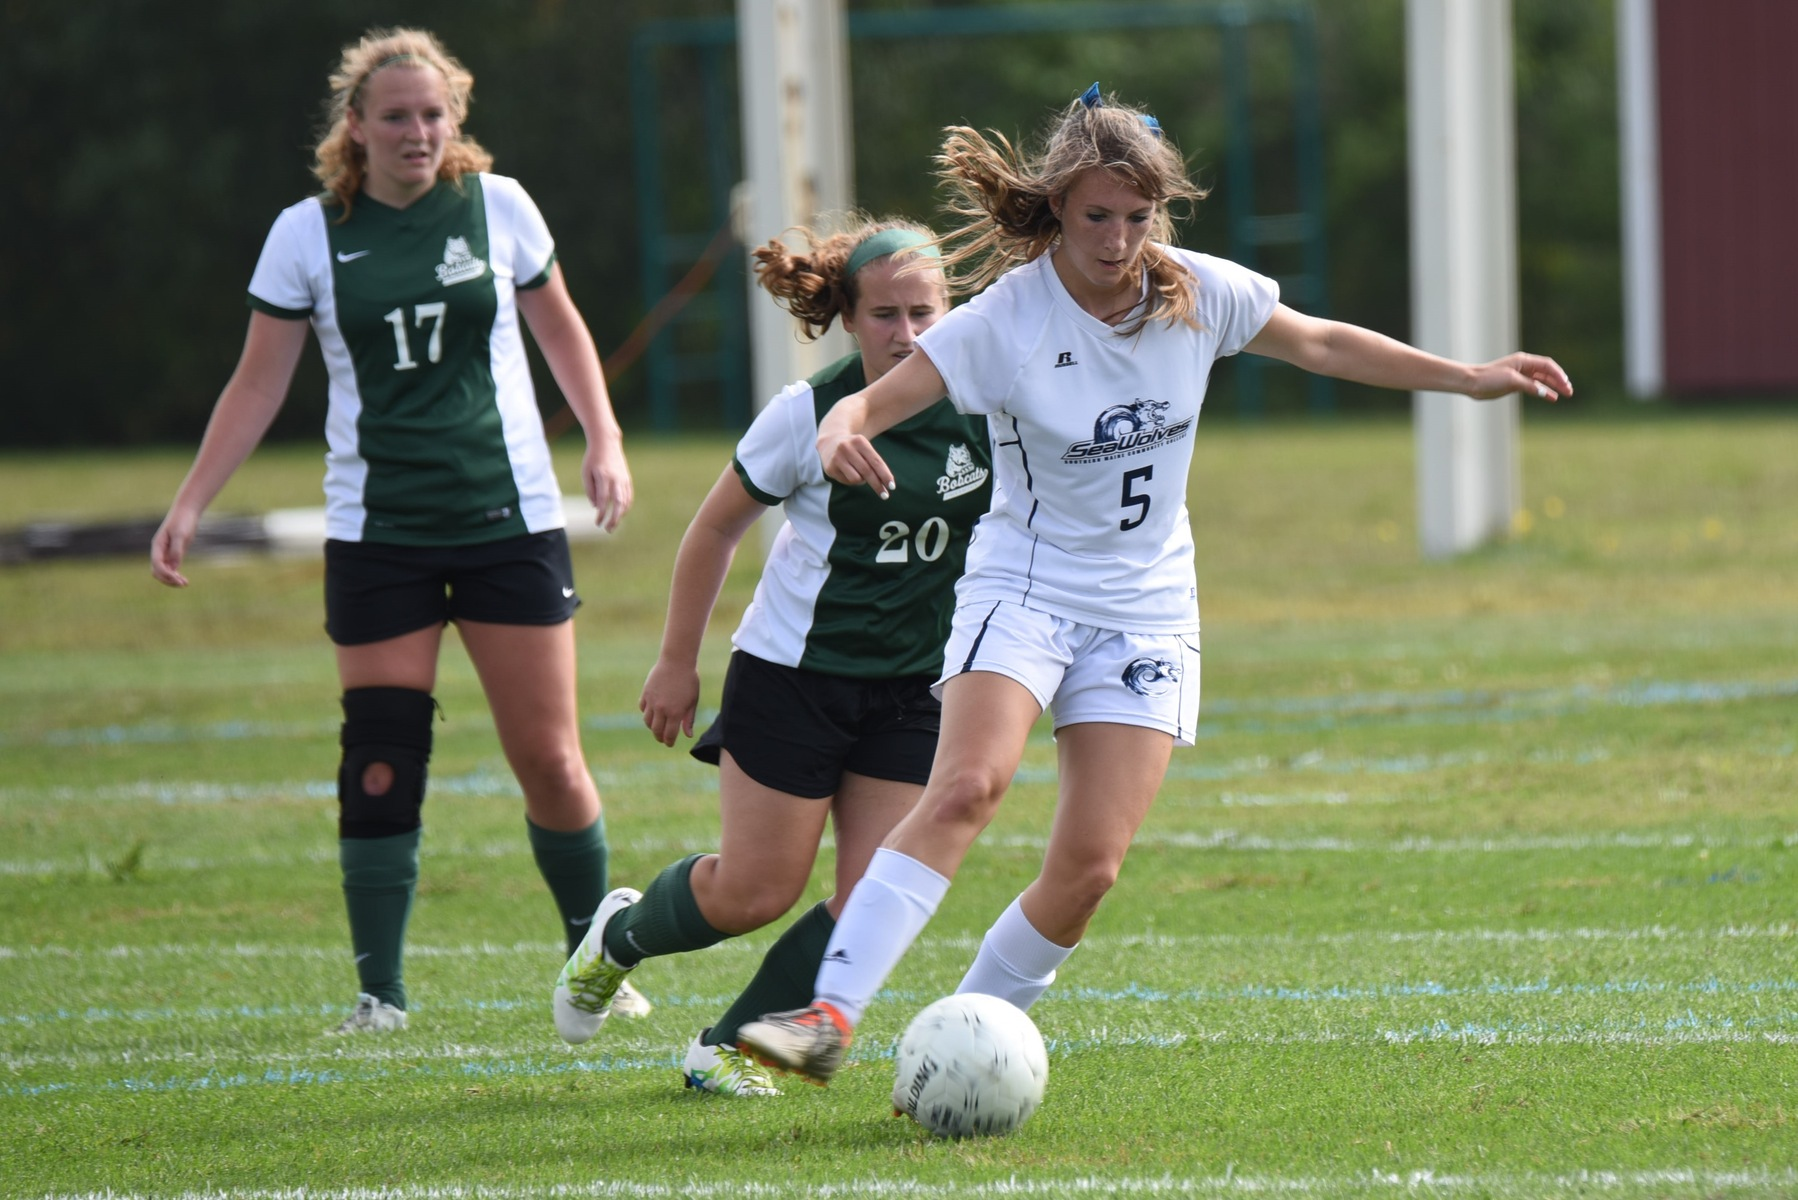 Lady SeaWolves Shutout PSC, Remain Unbeaten